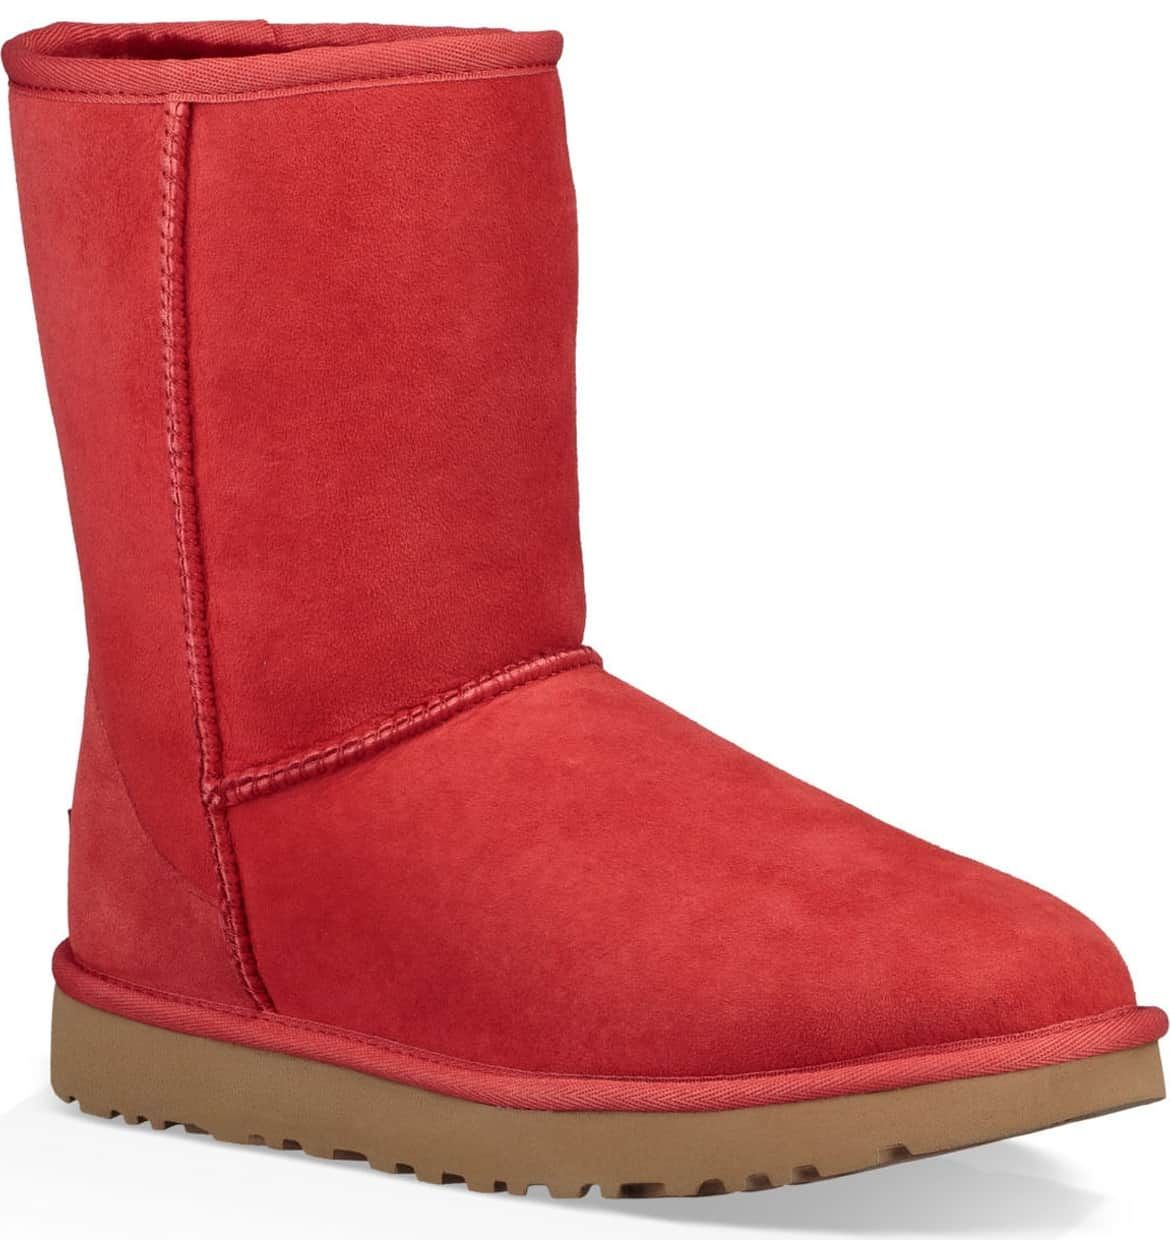 021eeca041d UGG Classic II' Genuine Shearling Lined Short Boot, Main, color ...